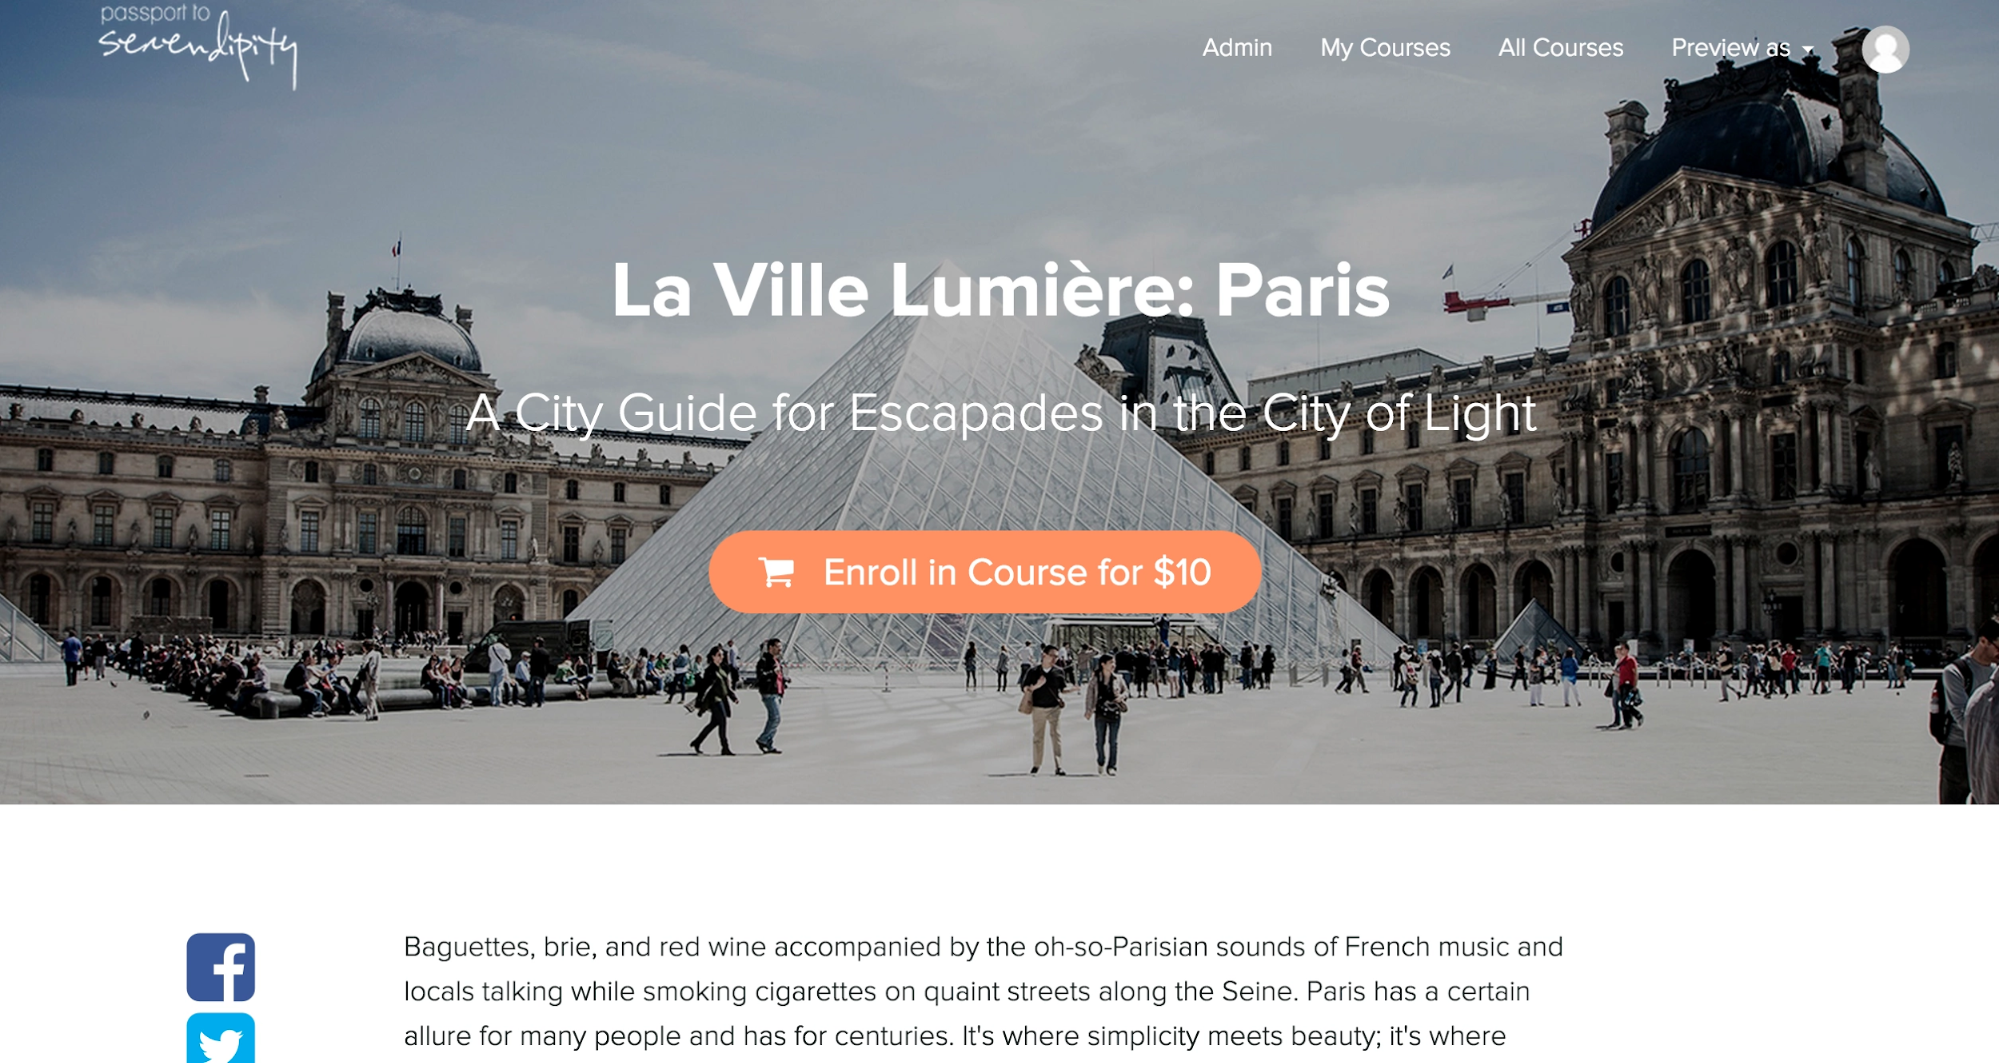 Blog Landing Page Selling Courses Example